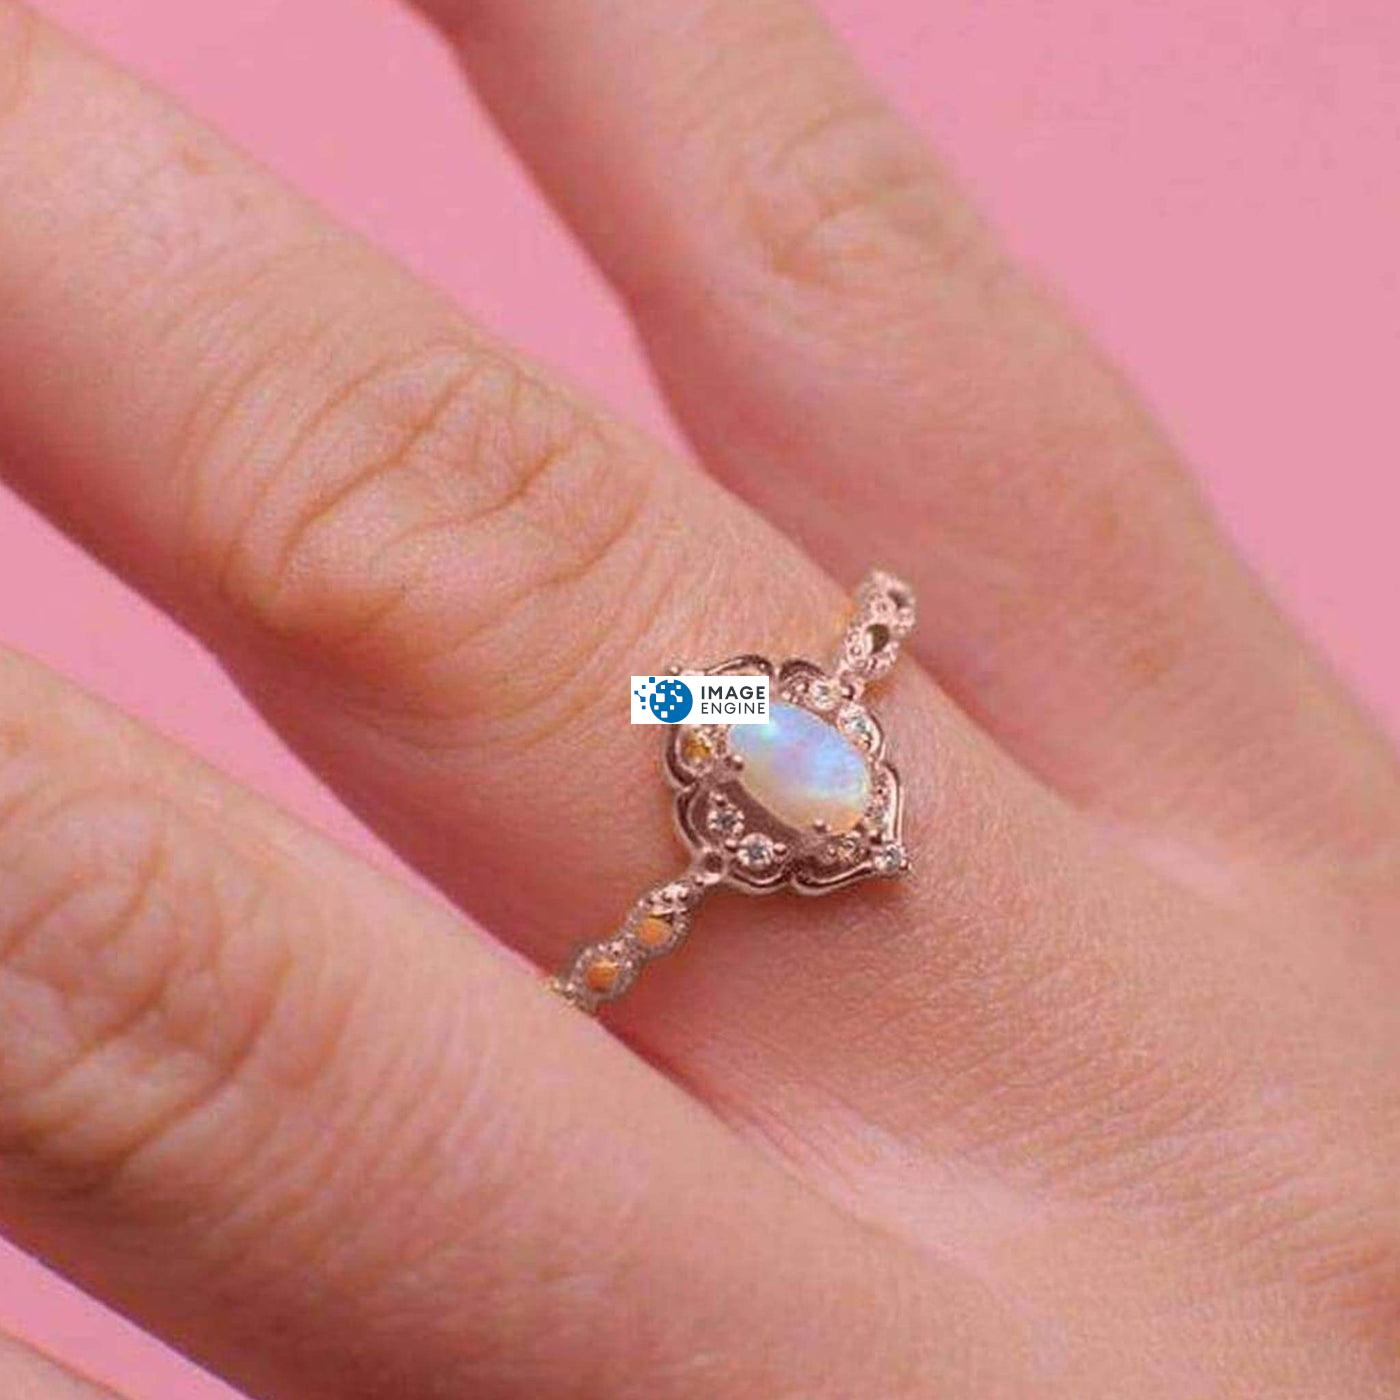 Blue Opal Carved Ring - Wearing on Ring Finger on Higher Angle View - 18K Rose Gold Vermeil